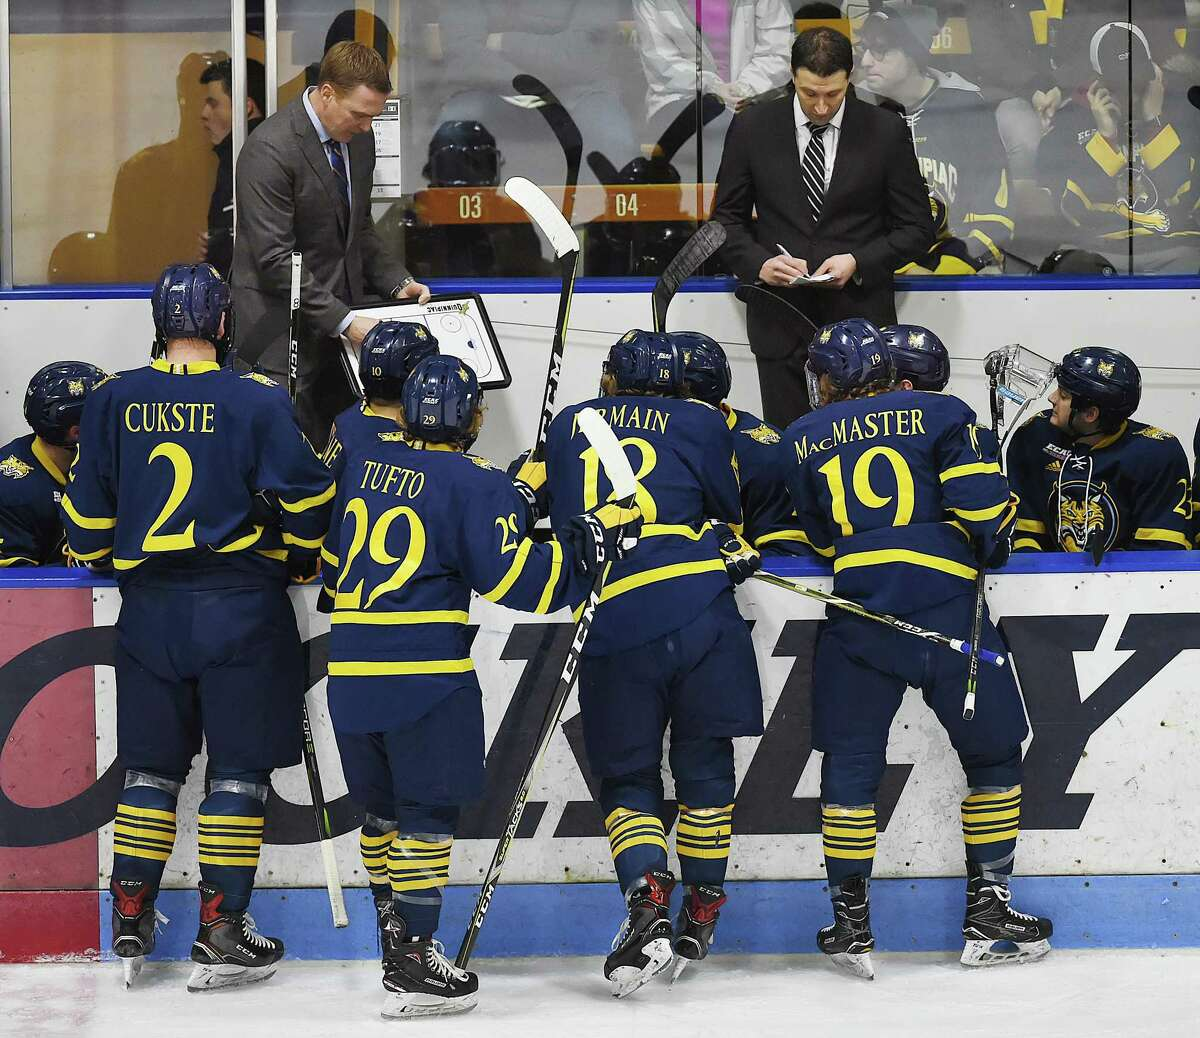 The Quinnipiac men's hockey team saw its streak of 21 consecutive seasons without a losing record end in the 2017-18 campaign.